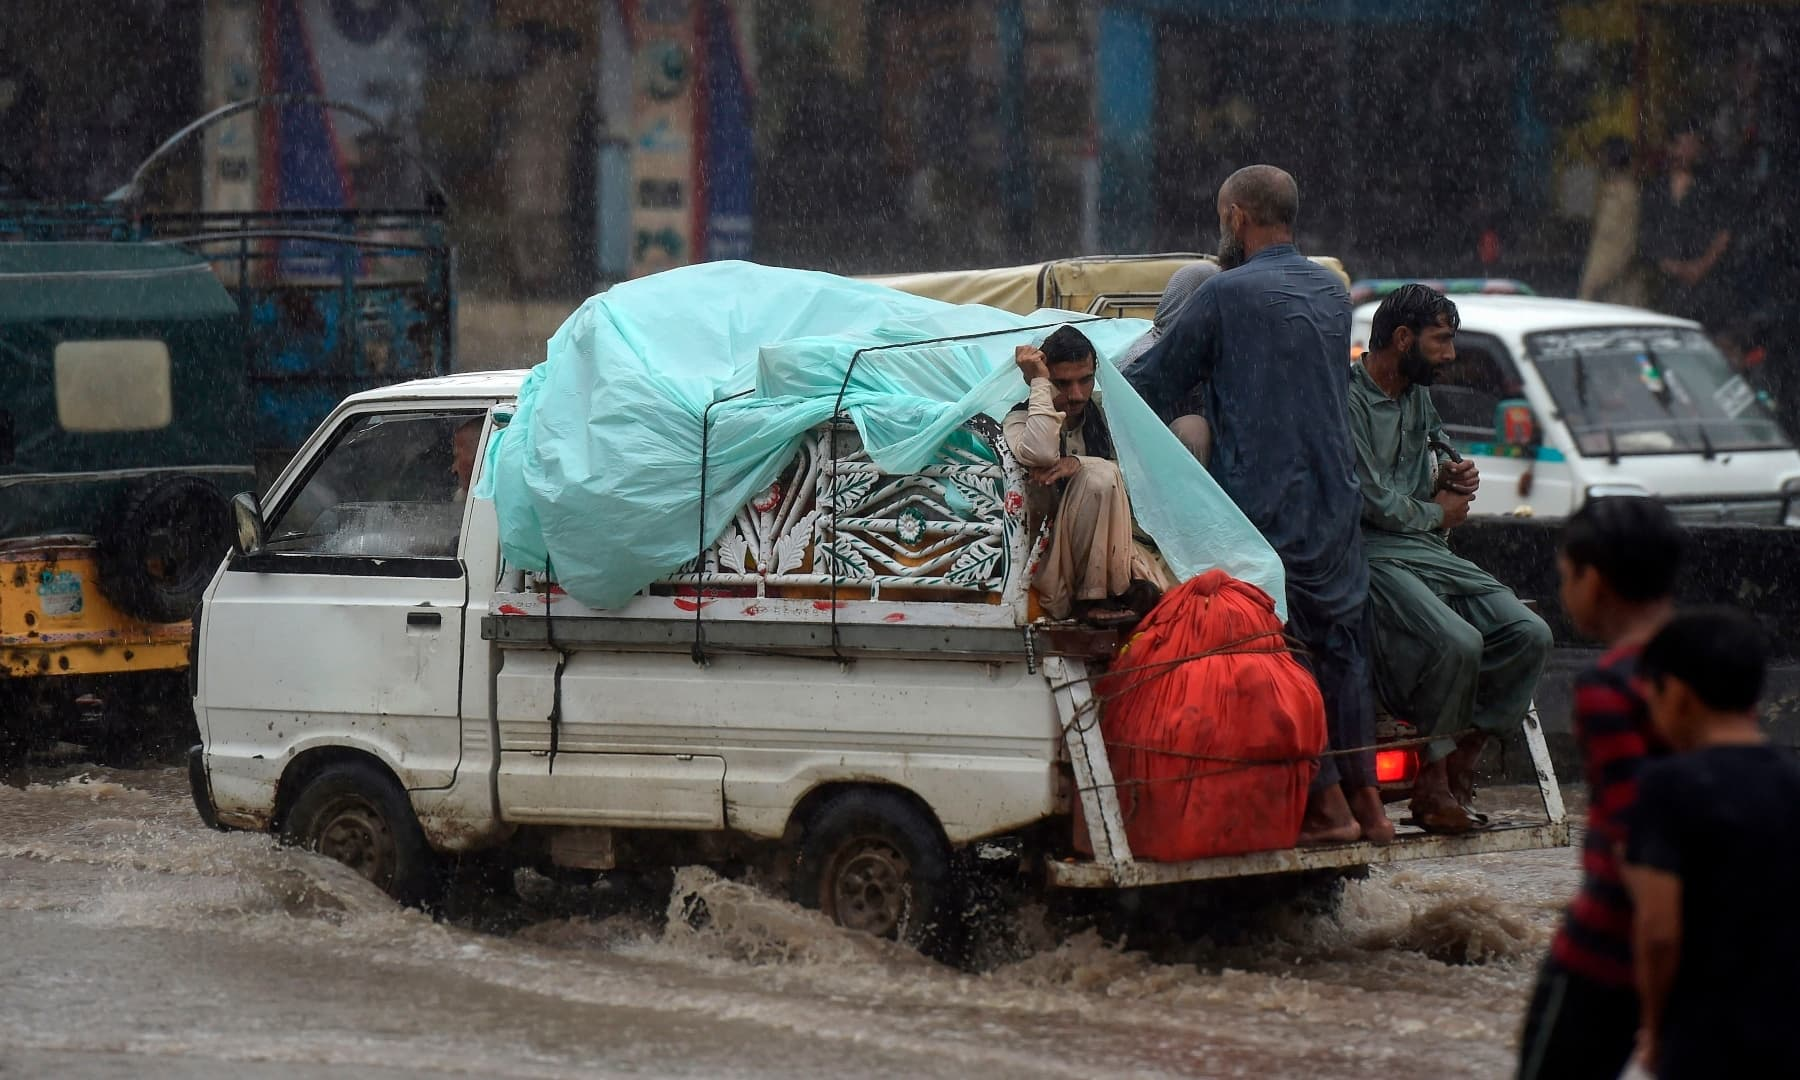 People ride in a vehicle during heavy monsoon rains in Karachi. — AFP